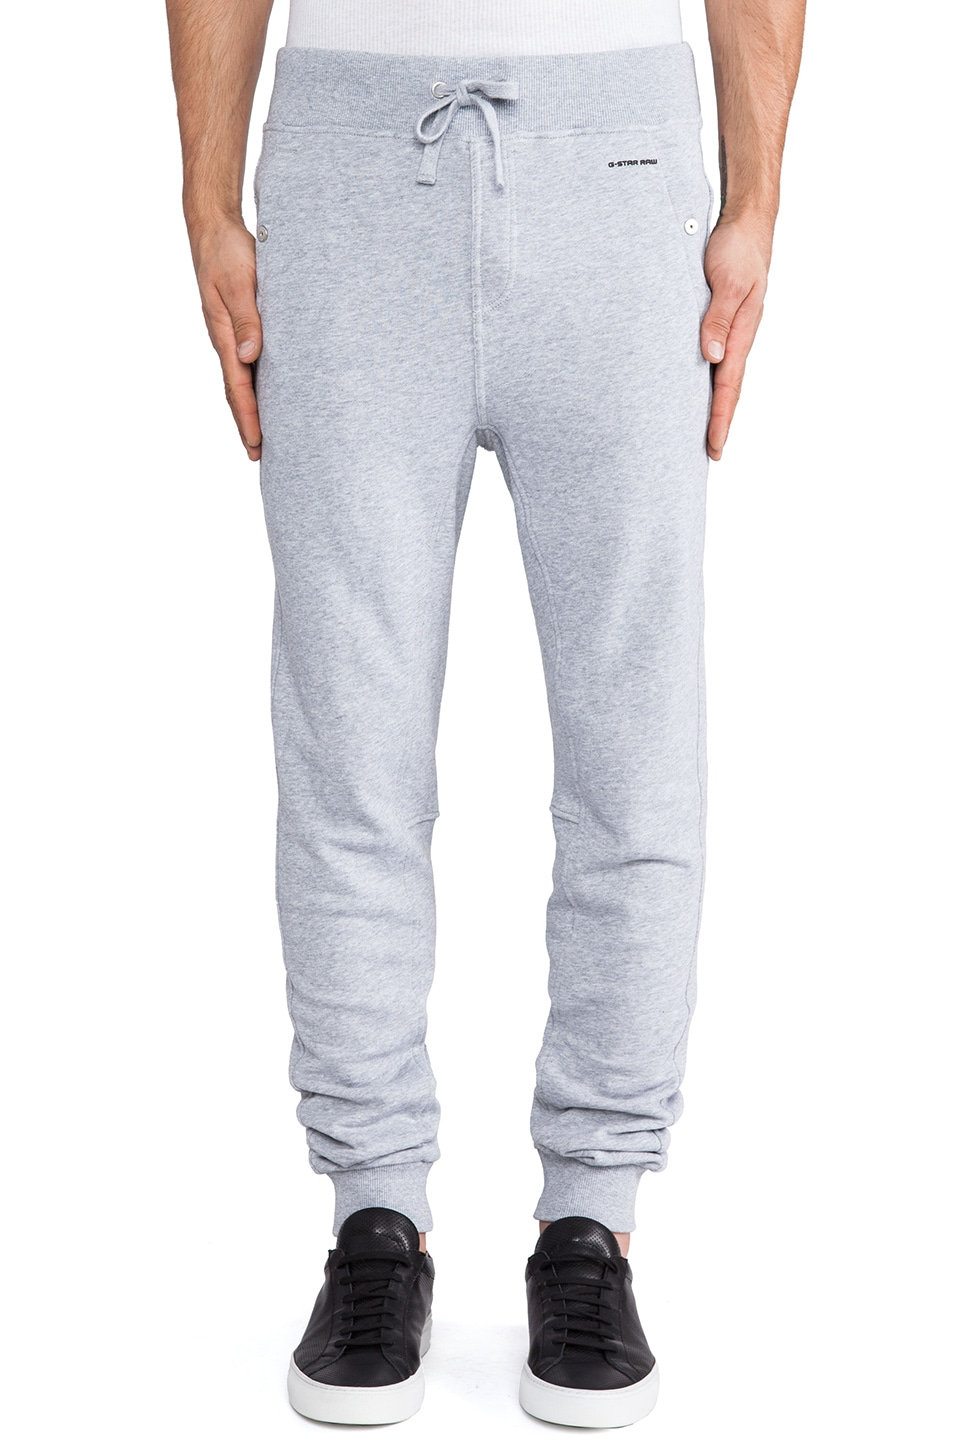 G-Star Sobeck Tapered Sweatpant in Grey Heather